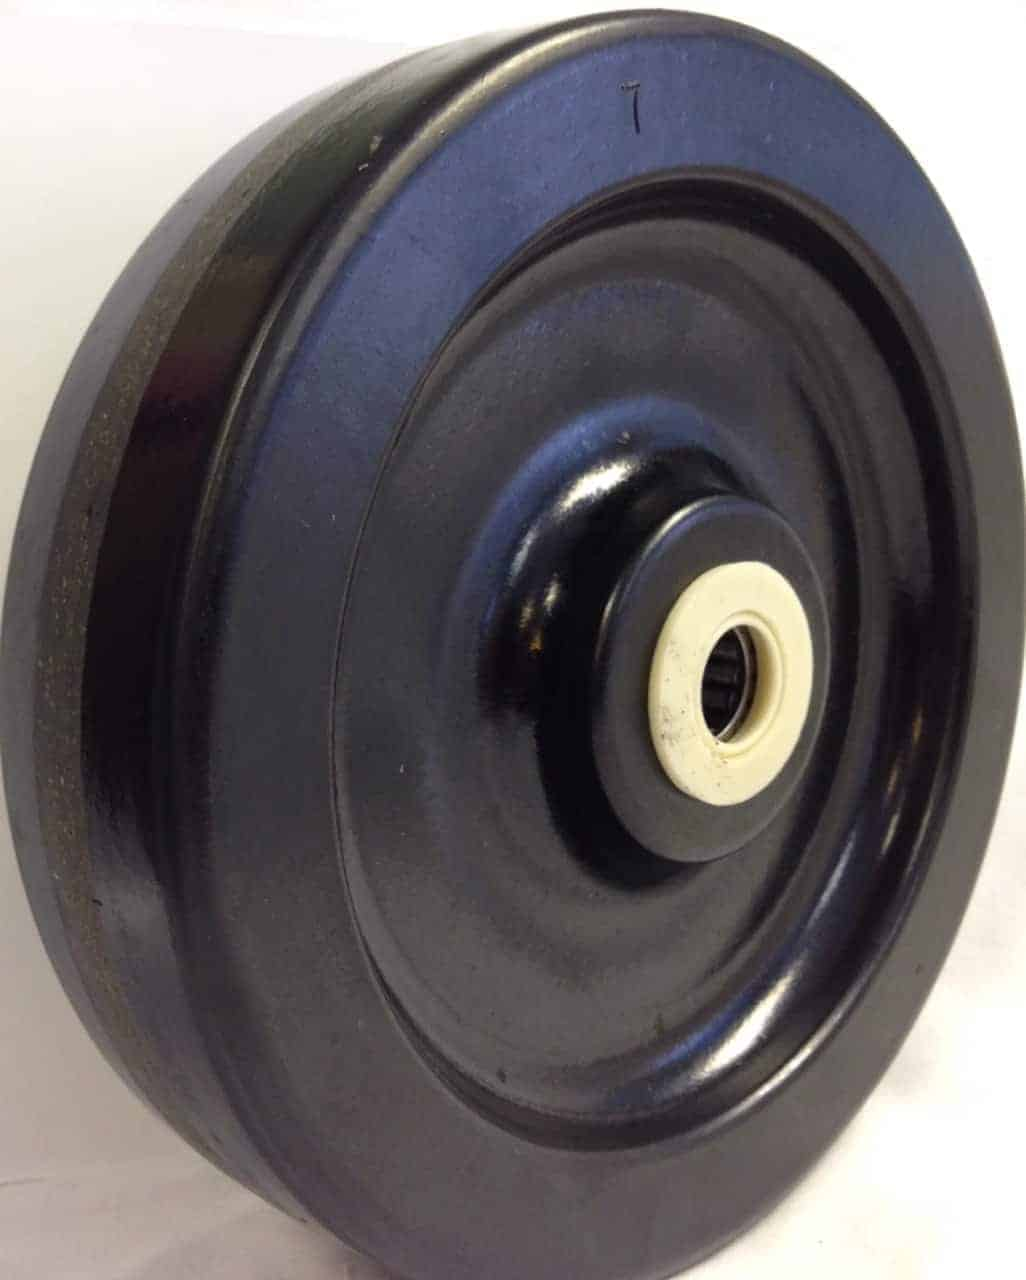 16″ Phenolic Wheel With 4-1/4″ Hub 1-1/2″ Roller Bearing 8000 Lbs Capacity